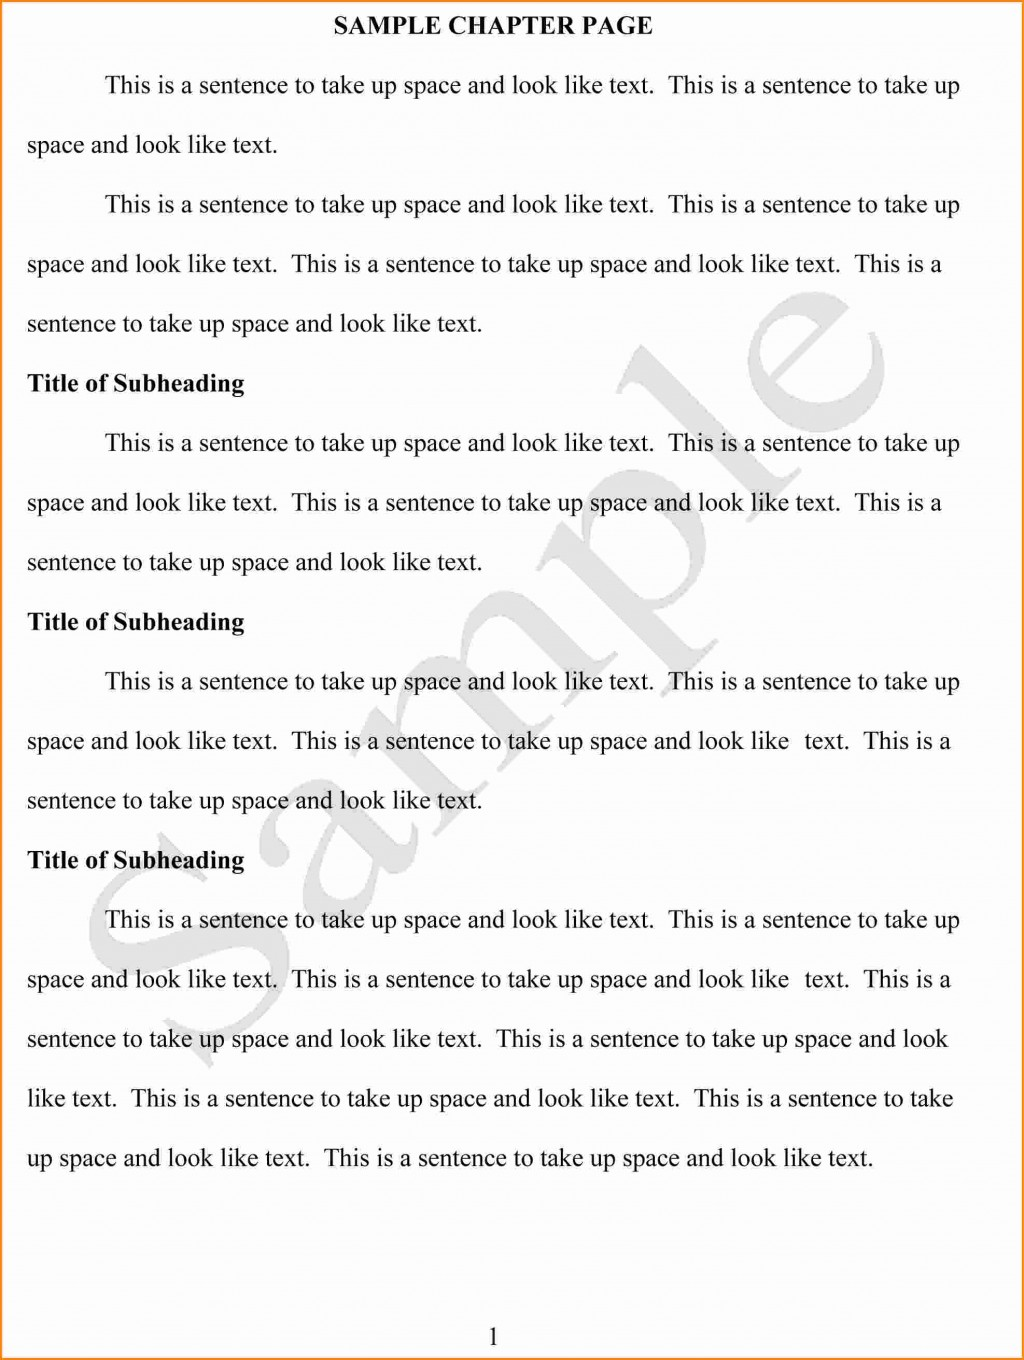 006 Thesis Essay Bullying About In Schools Format Of Persuasive On High School Application Samples Example Amazing The Cause And Effect Cyberbullying Large